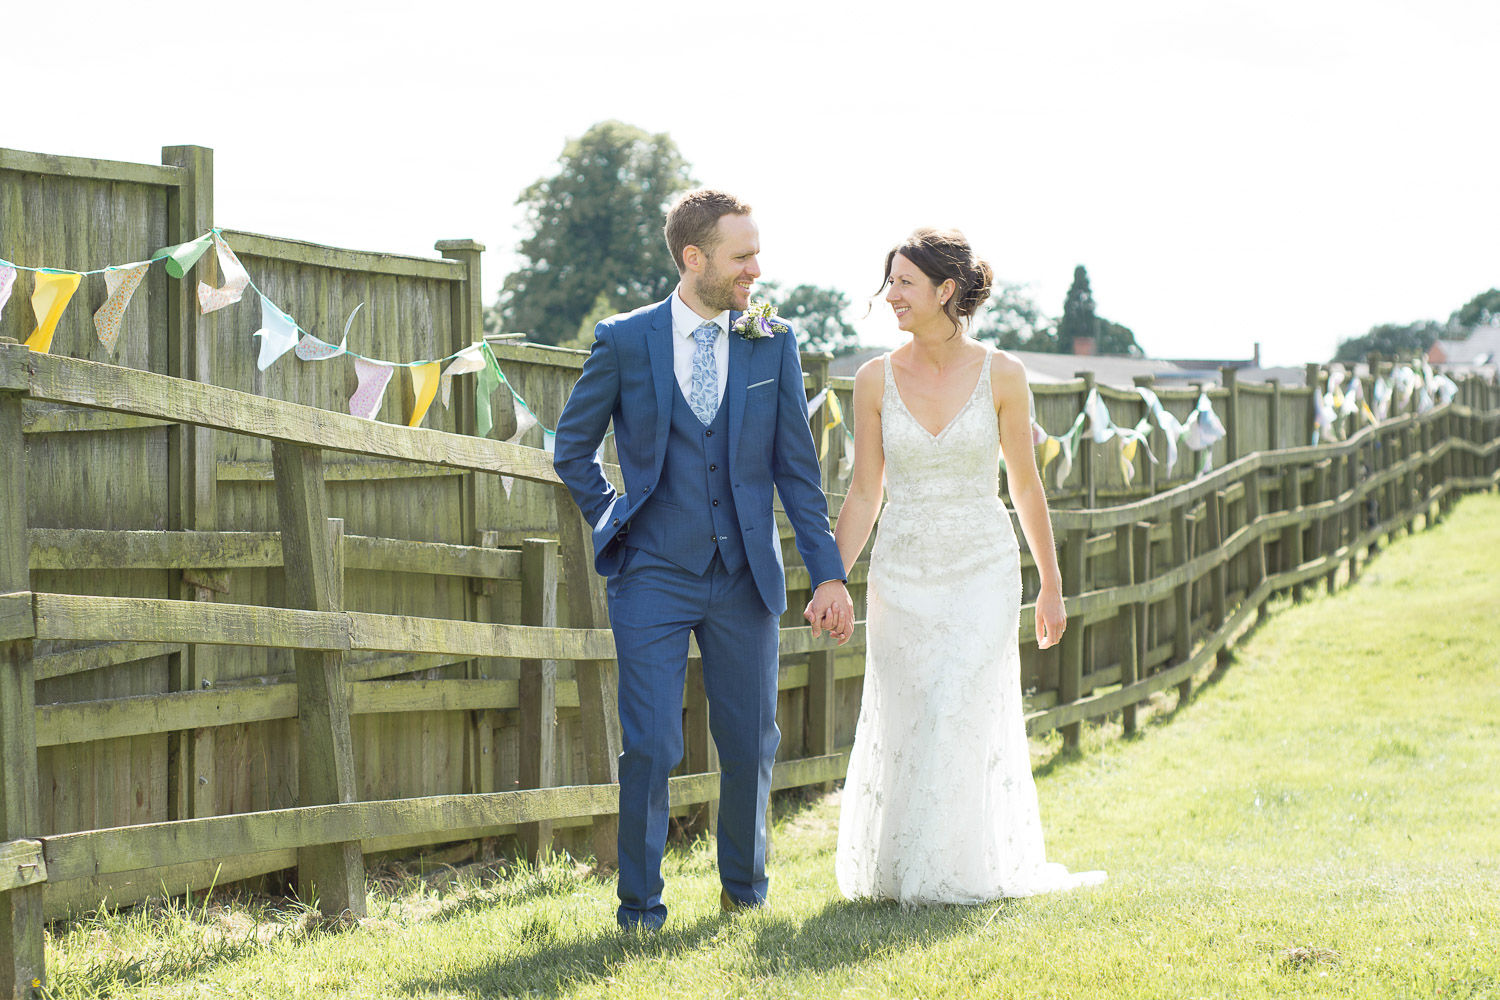 bride and groom walk together at wedding yurts wedding in leicestershire